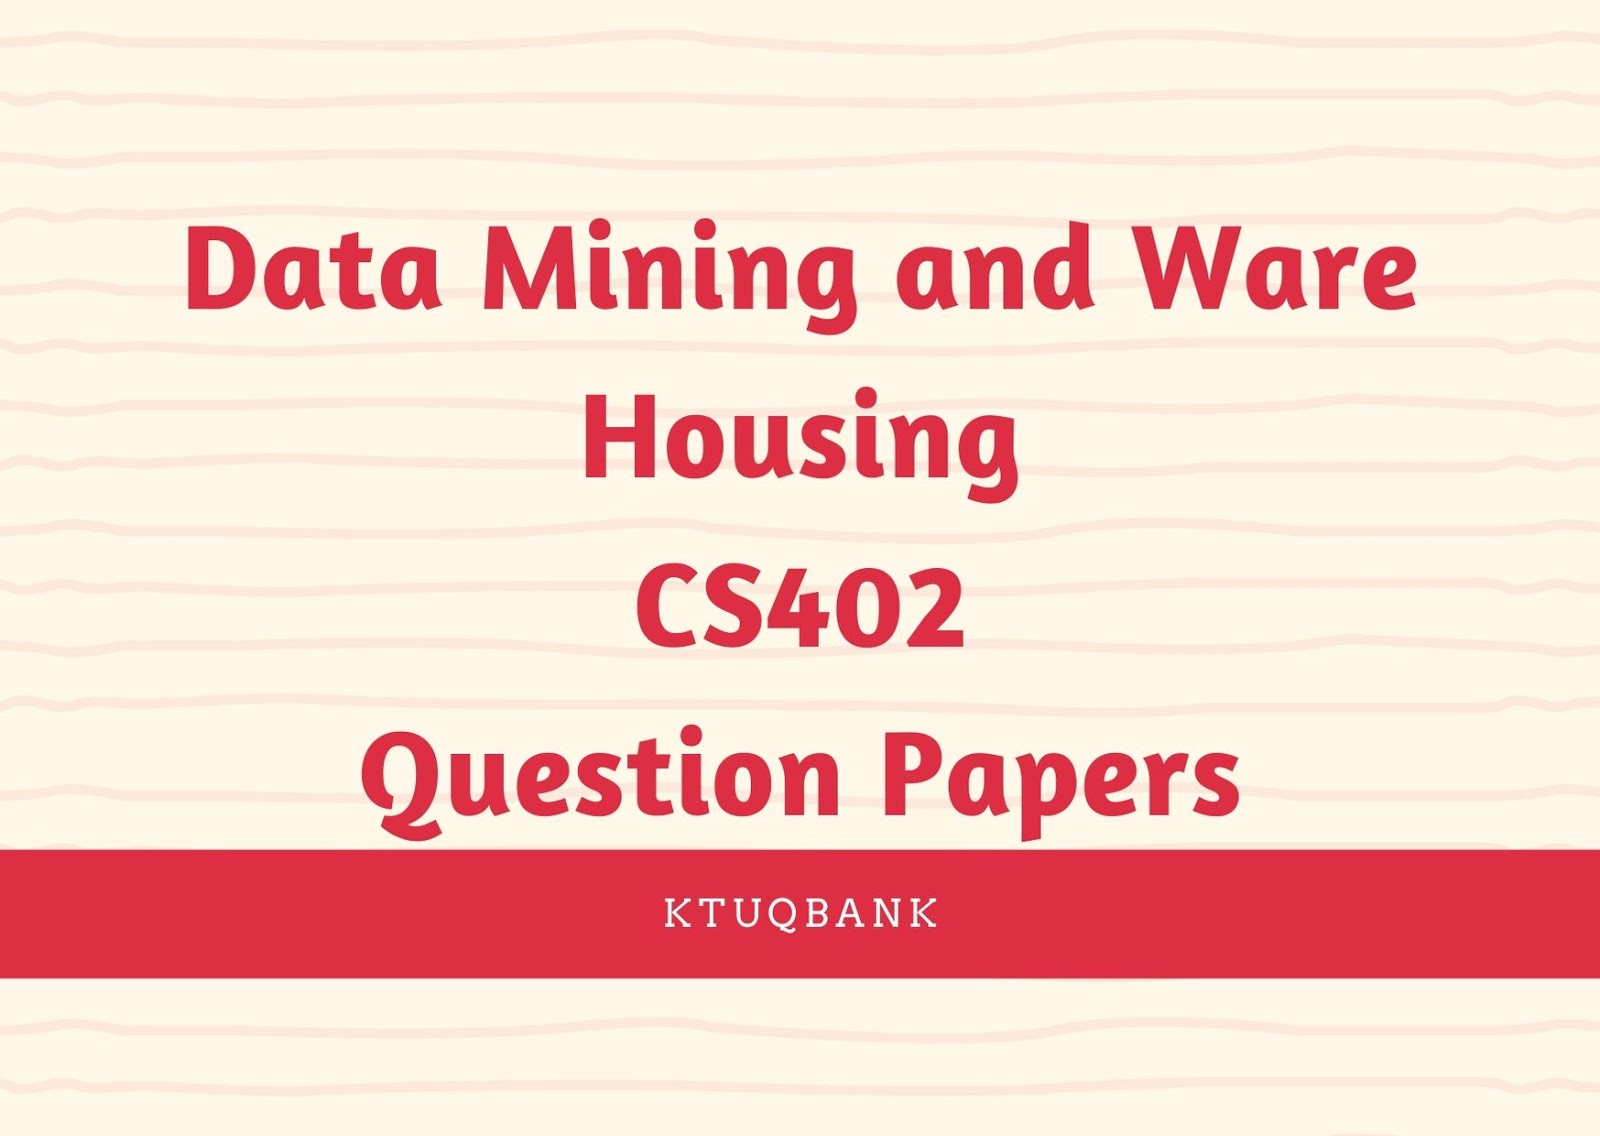 Data Mining and Ware Housing | CS402 | Question Papers (2015 batch)